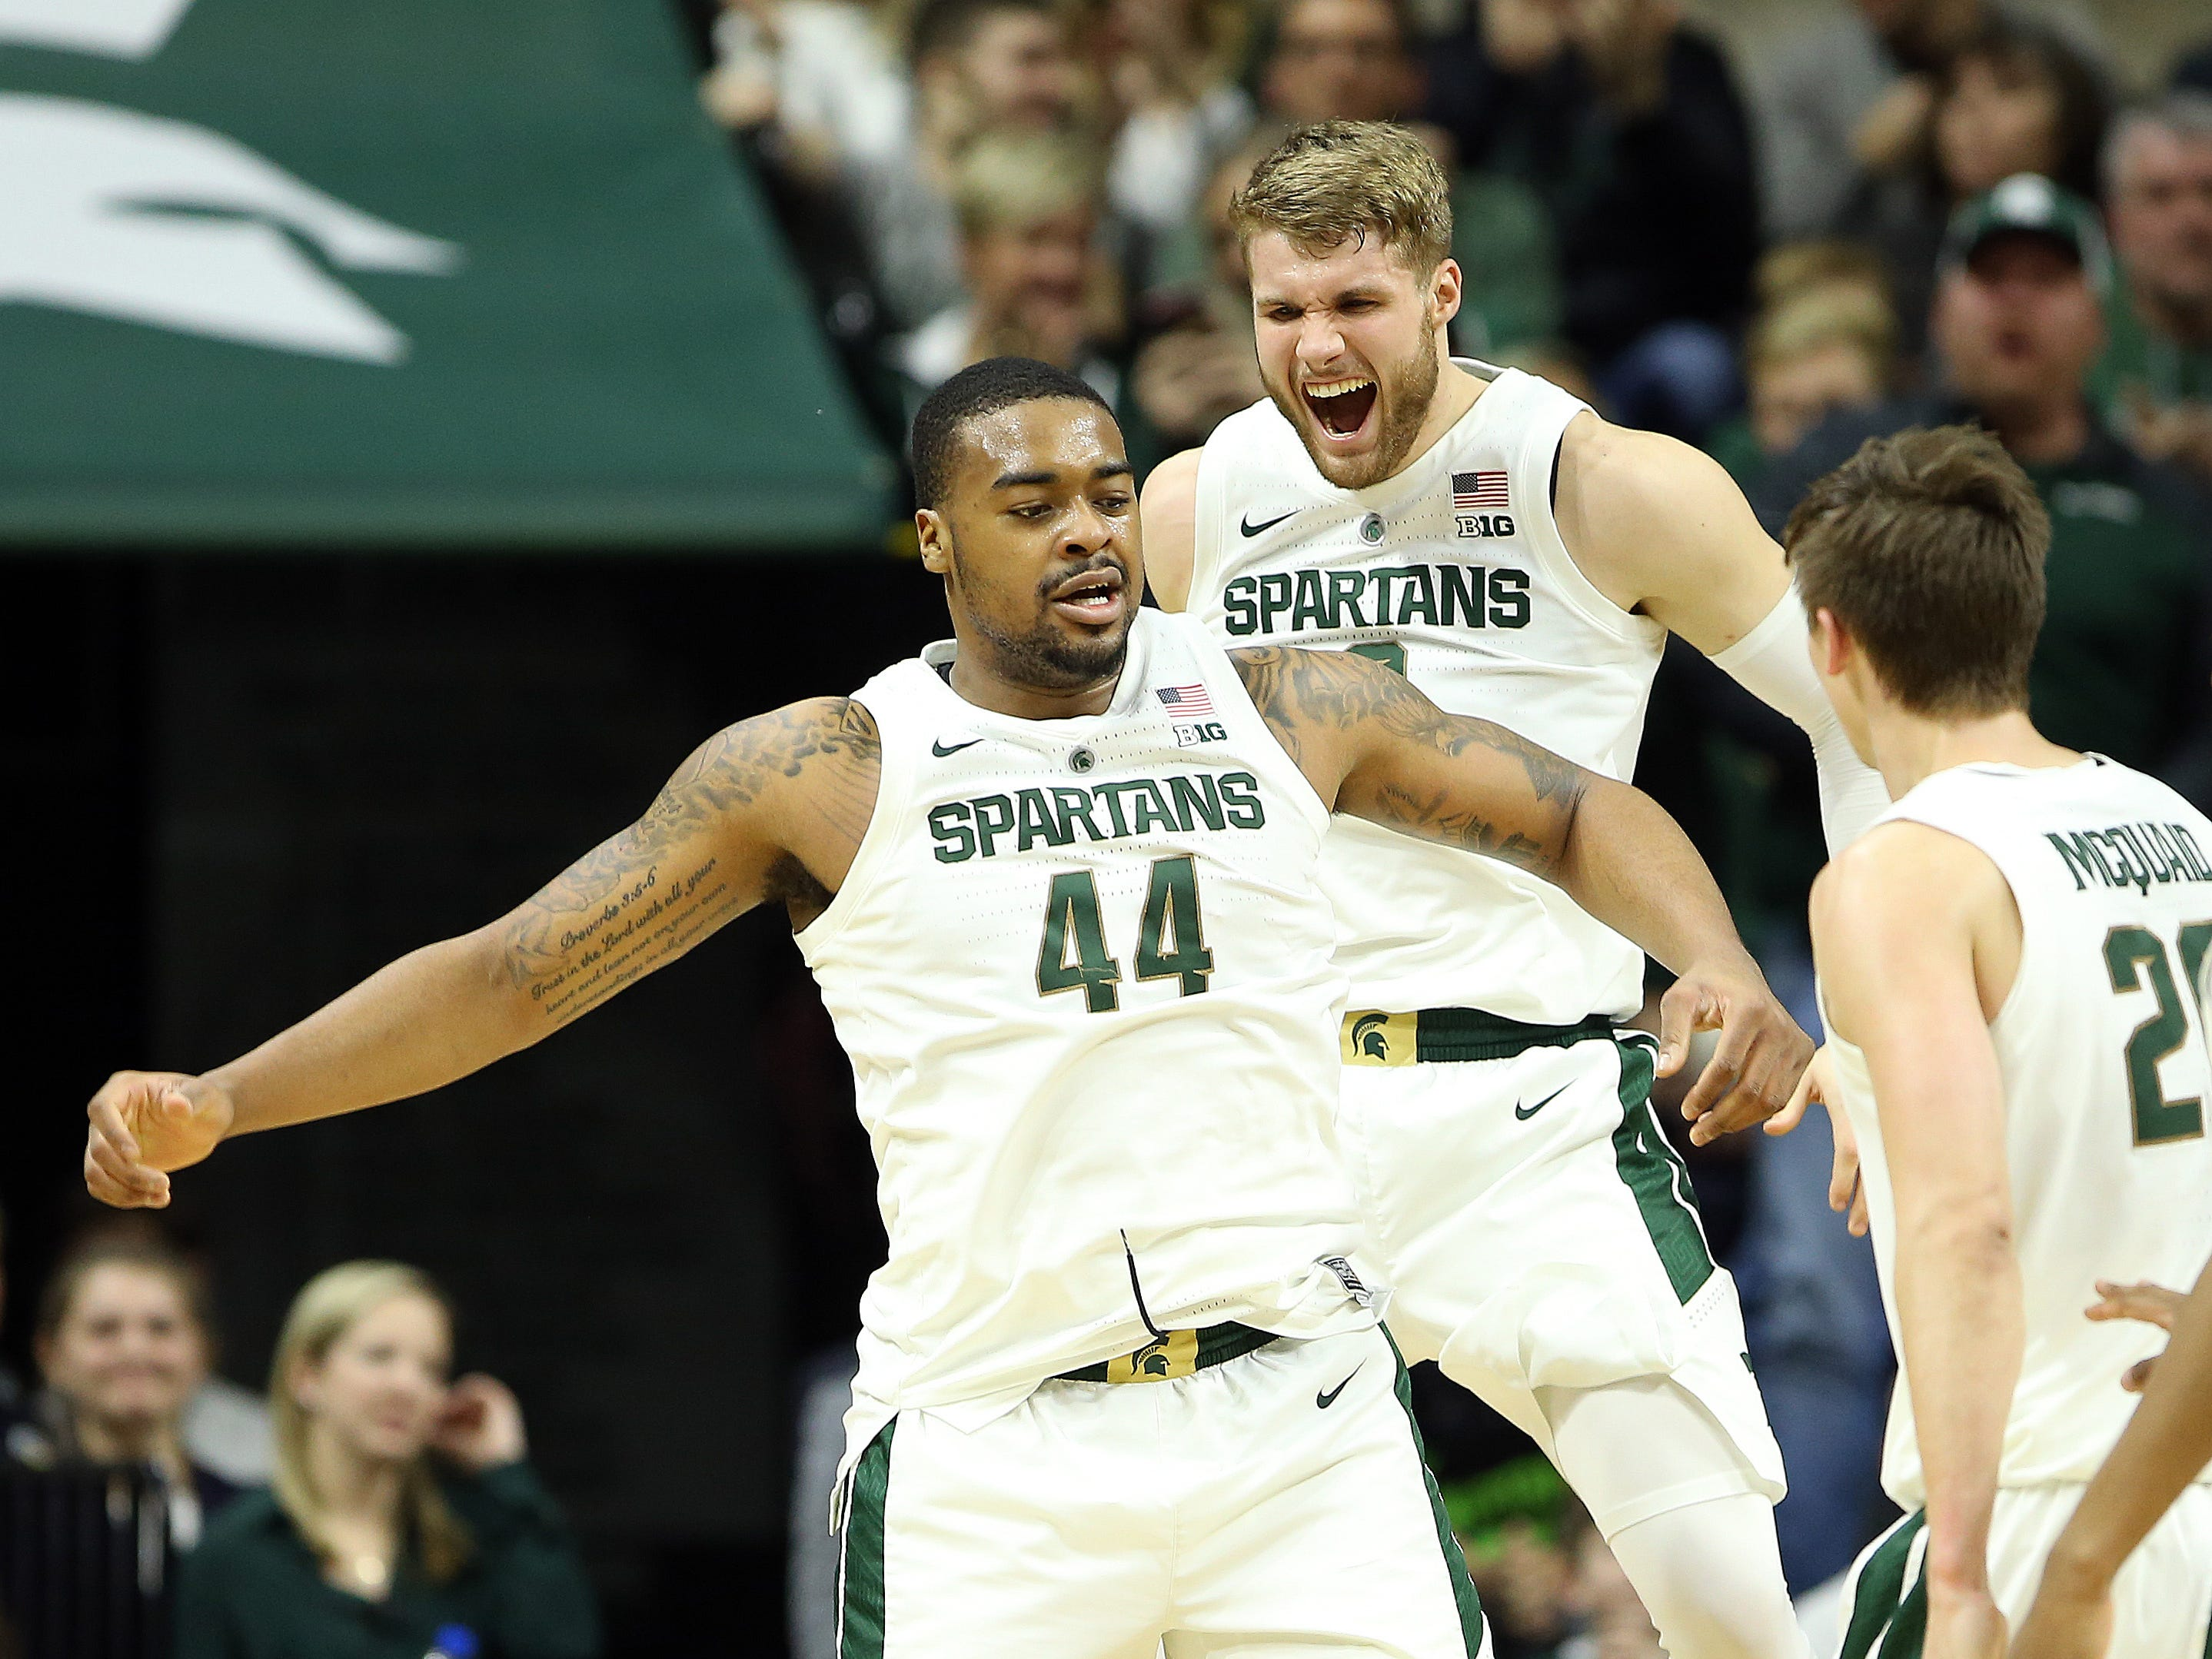 Michigan State forwards Nick Ward (44) and forward Kyle Ahrens react during the first half against Northwestern at the Breslin Center in East Lansing, Jan. 2, 2019.